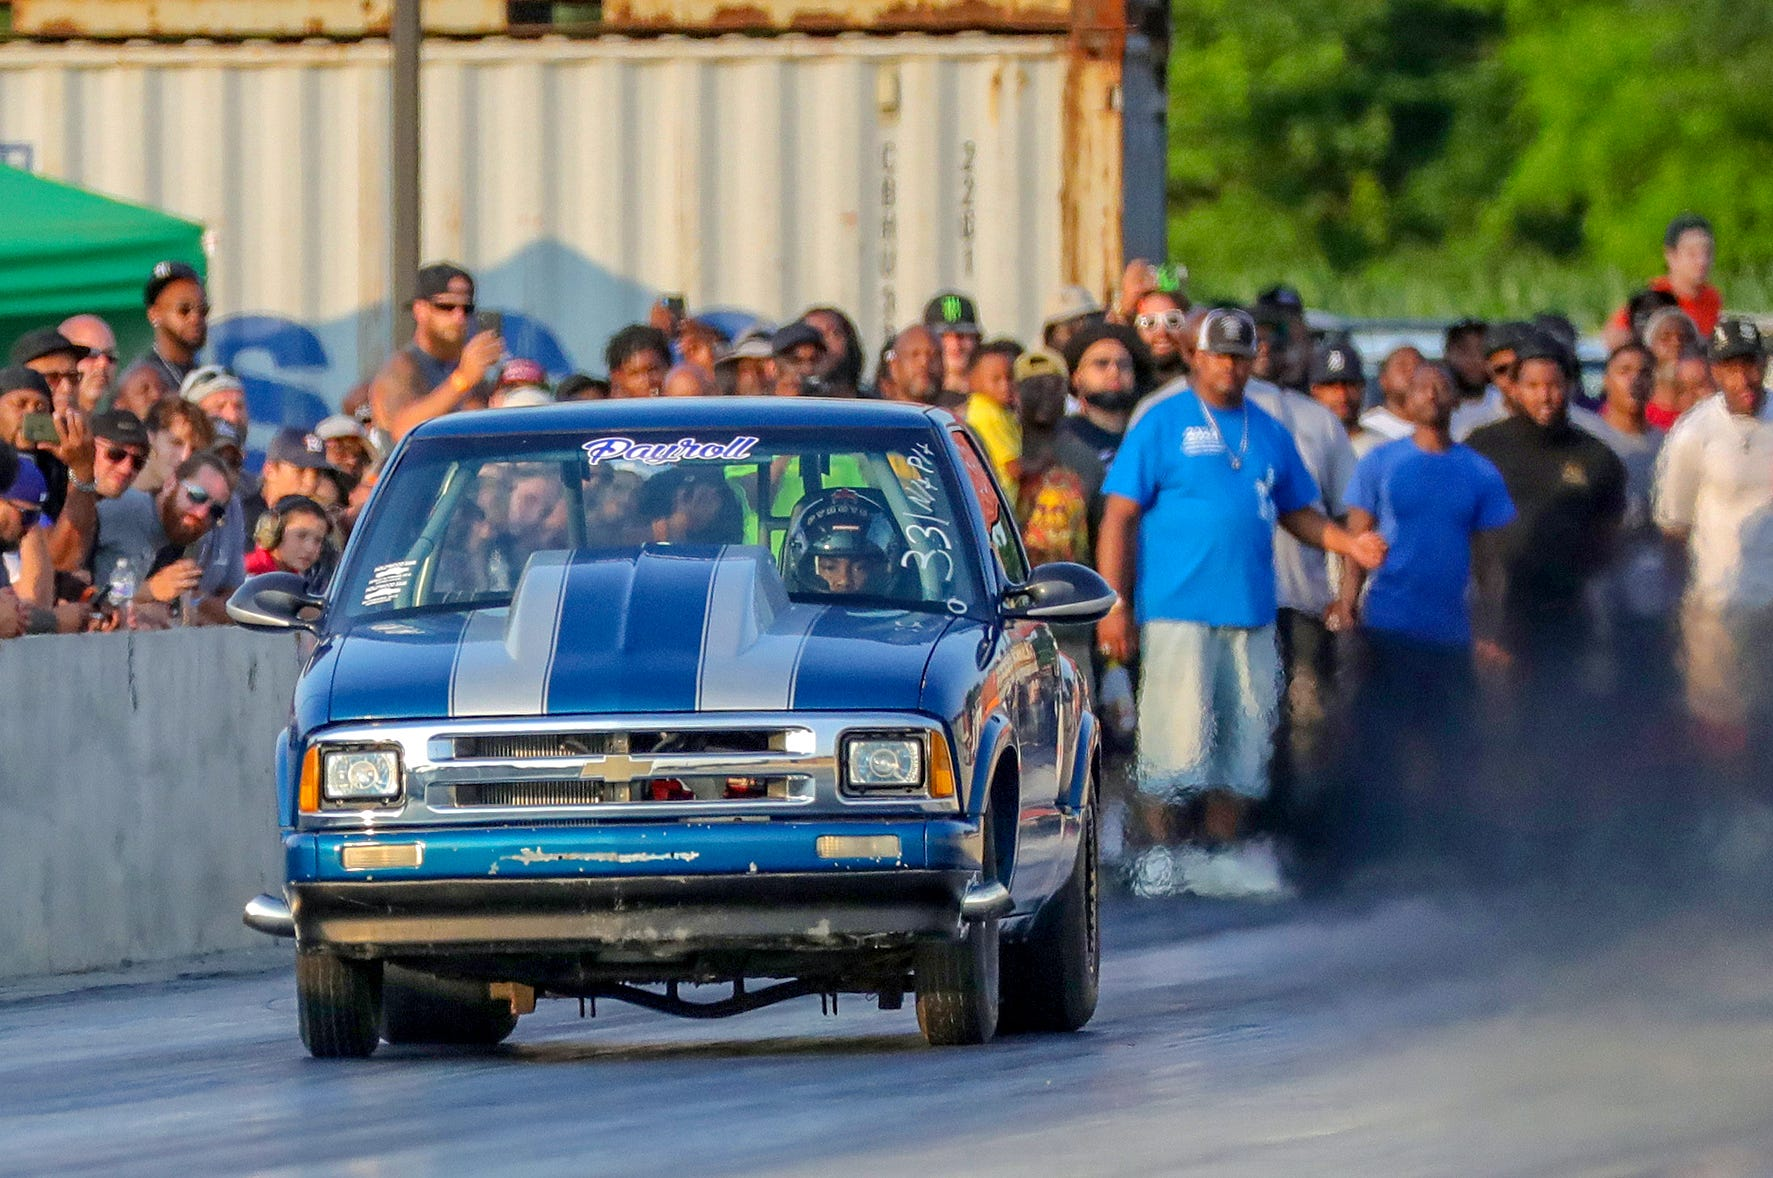 Joemari Fox, 21, peers over the steering wheel of his 1997 Chevrolet S-10 as he speeds down the track during his pass at Lapeer International Dragway on Saturday, July 17, 2021.